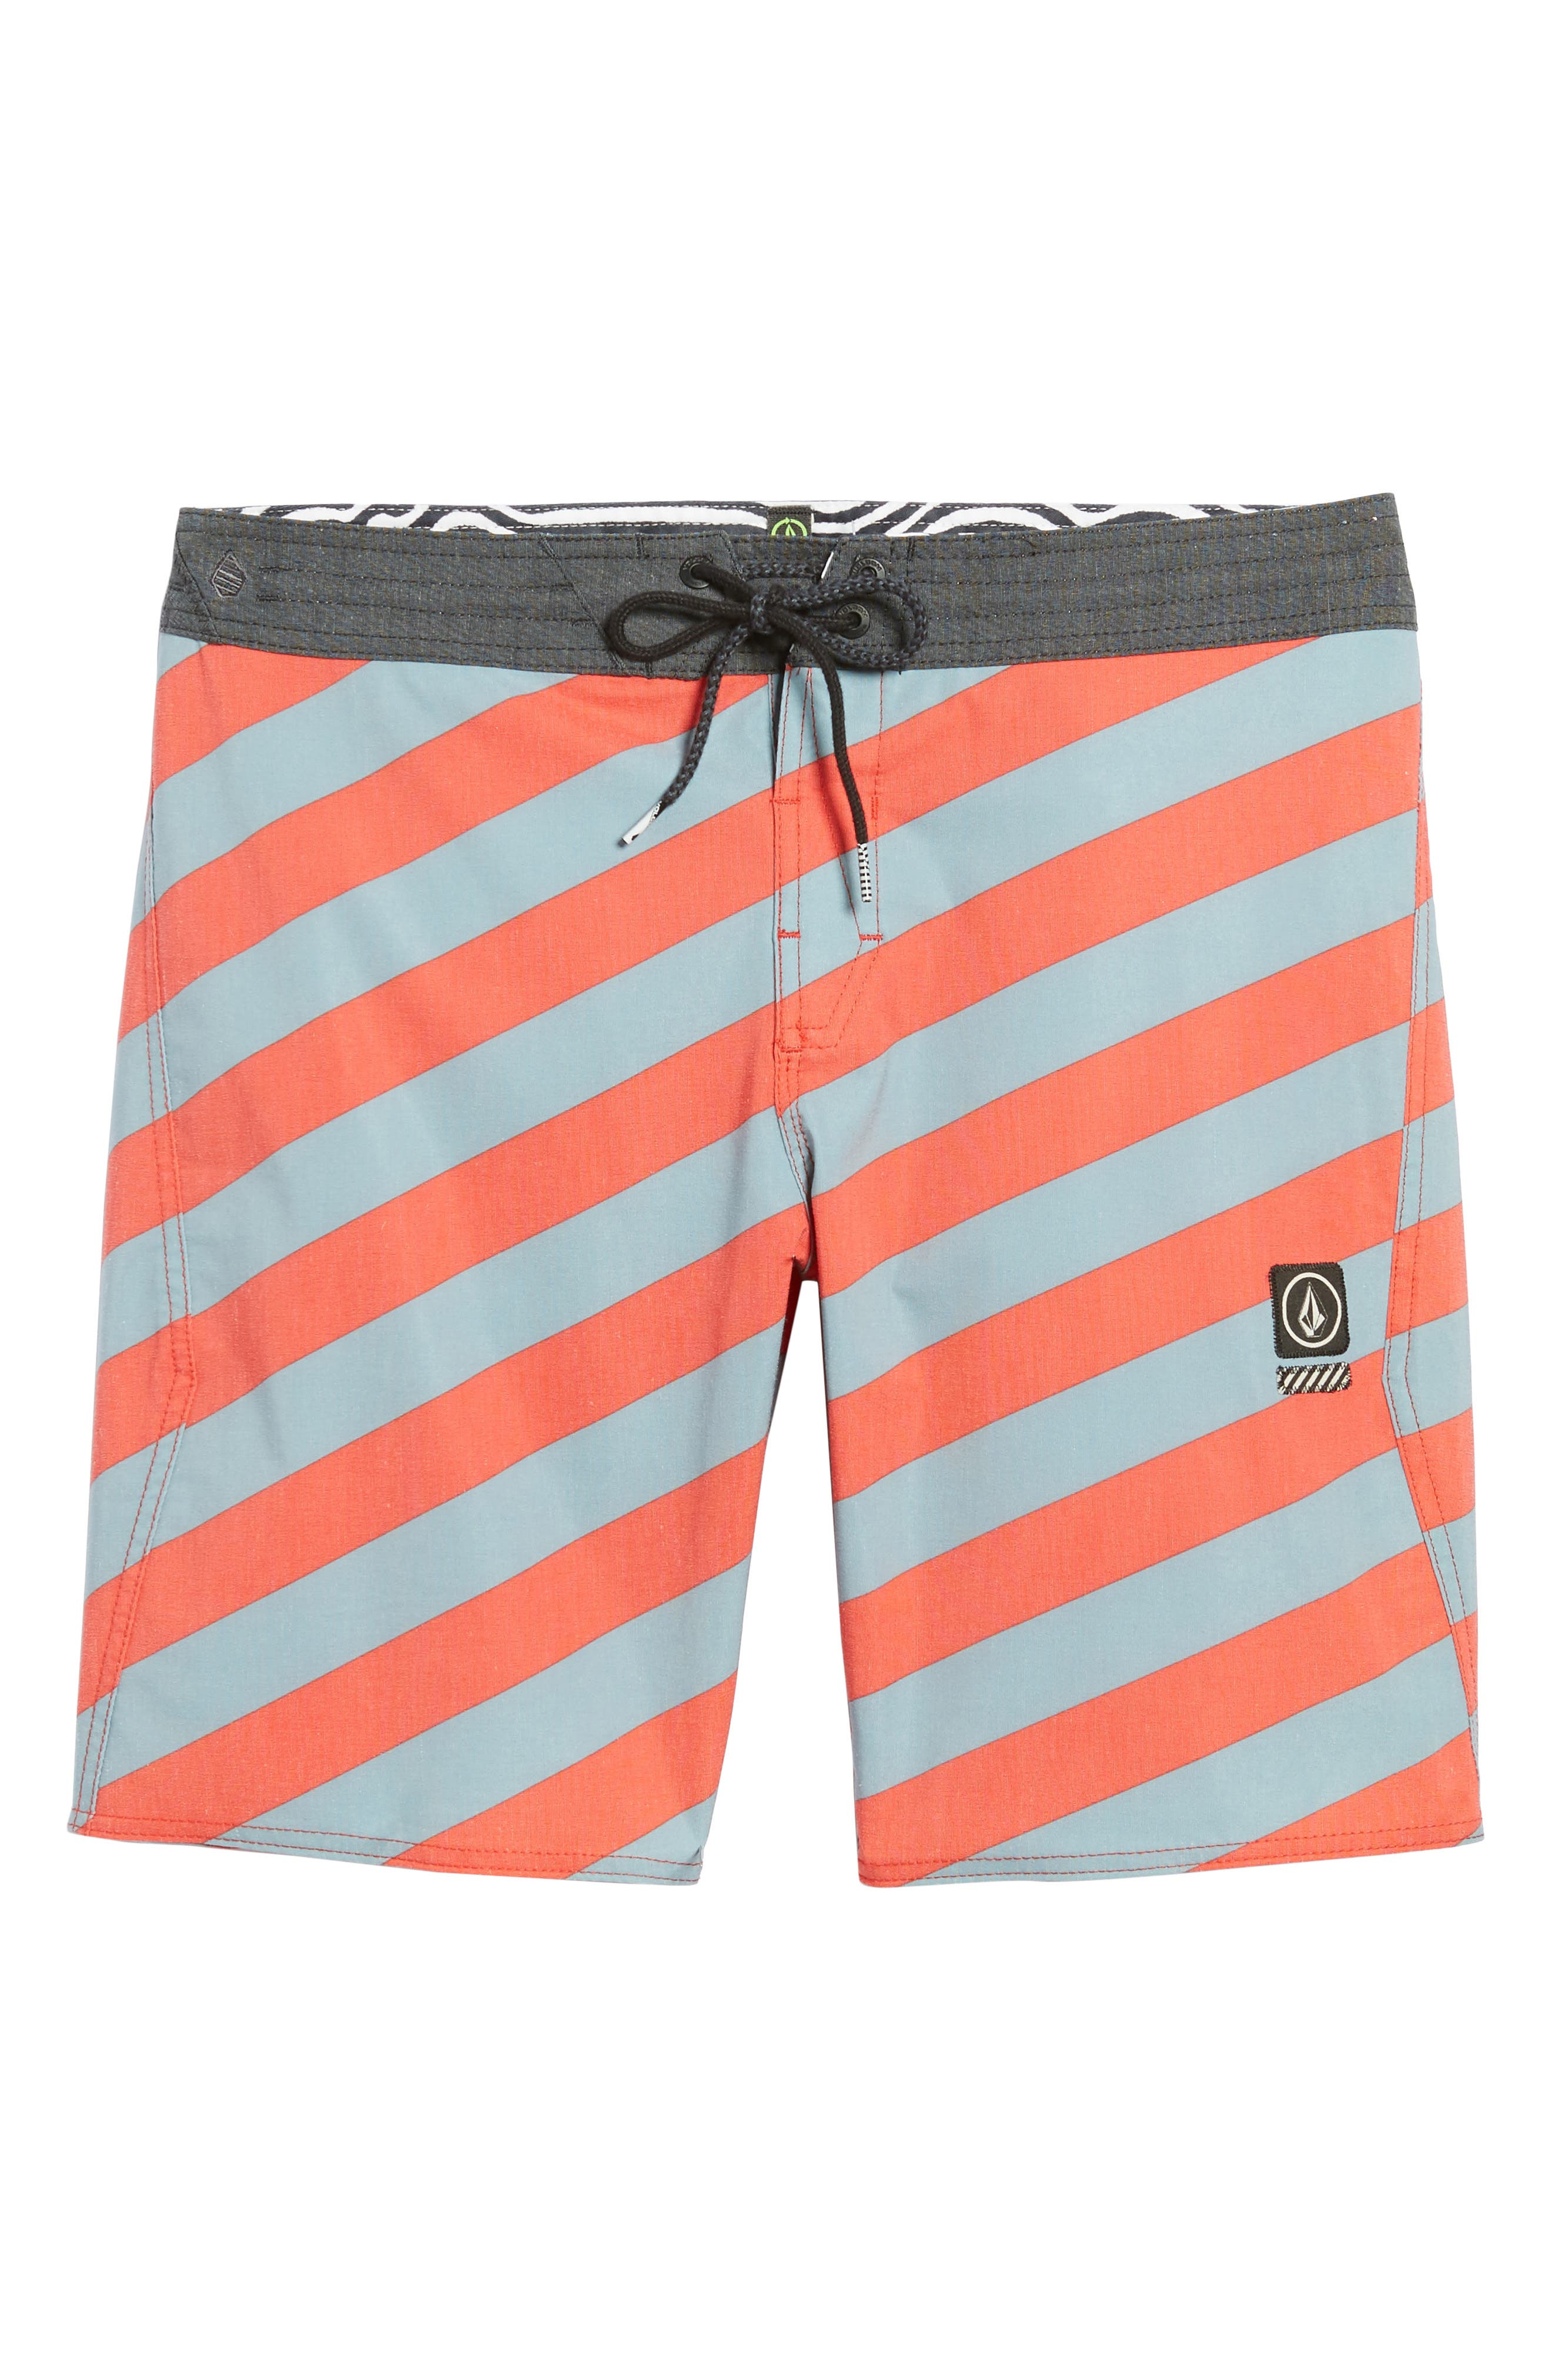 Stripey Stoney Boardshorts,                             Alternate thumbnail 6, color,                             Lead